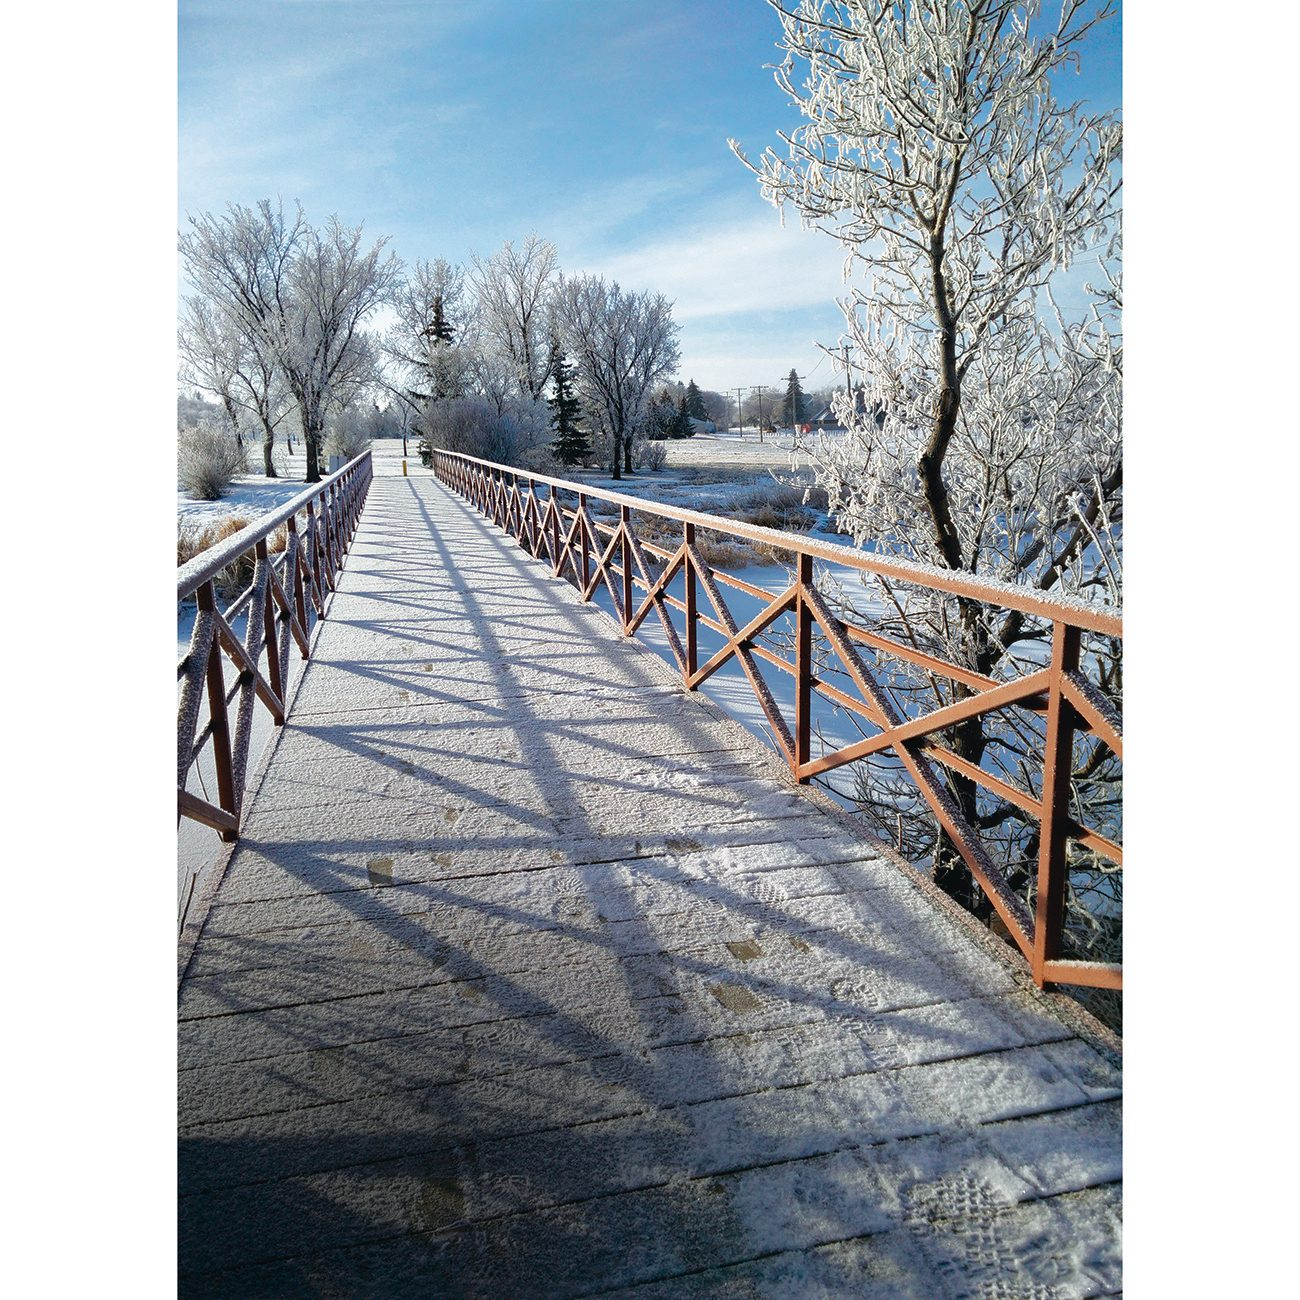 Beauty of the Canadian winter photography - bridge